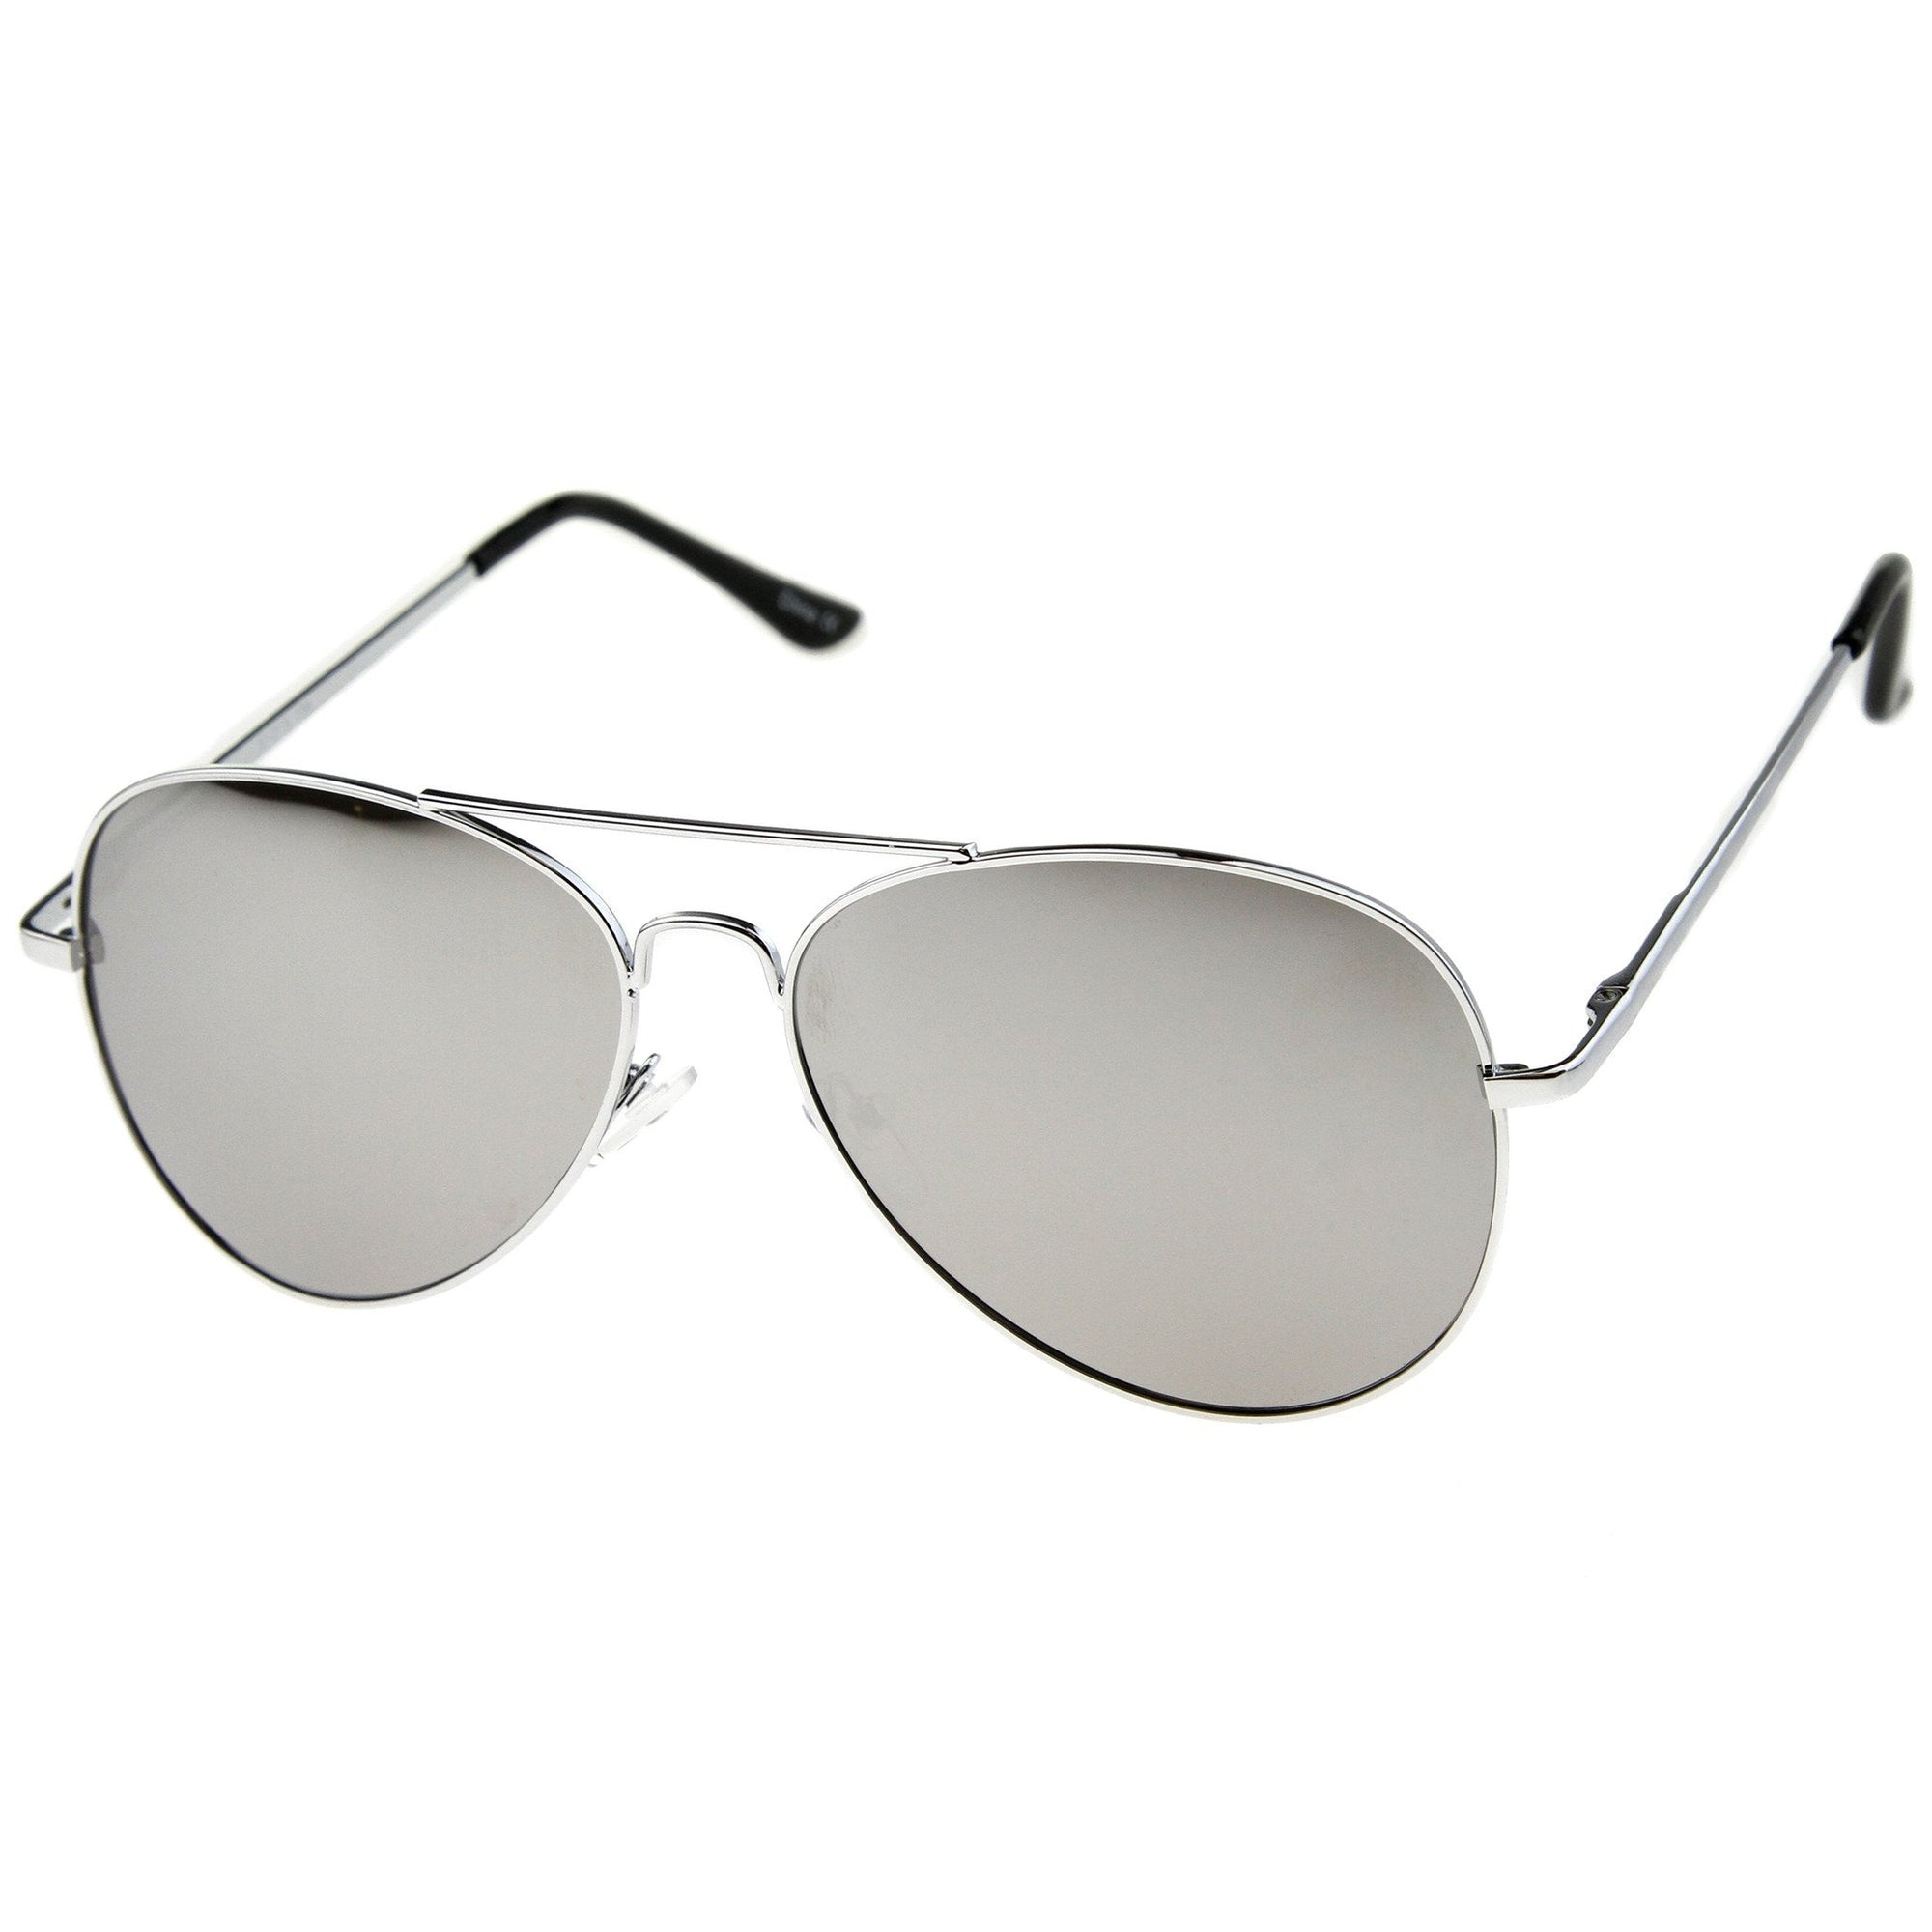 a5330bdcc5 Military Classic Mirrored Metal Aviator Sunglasses - zeroUV